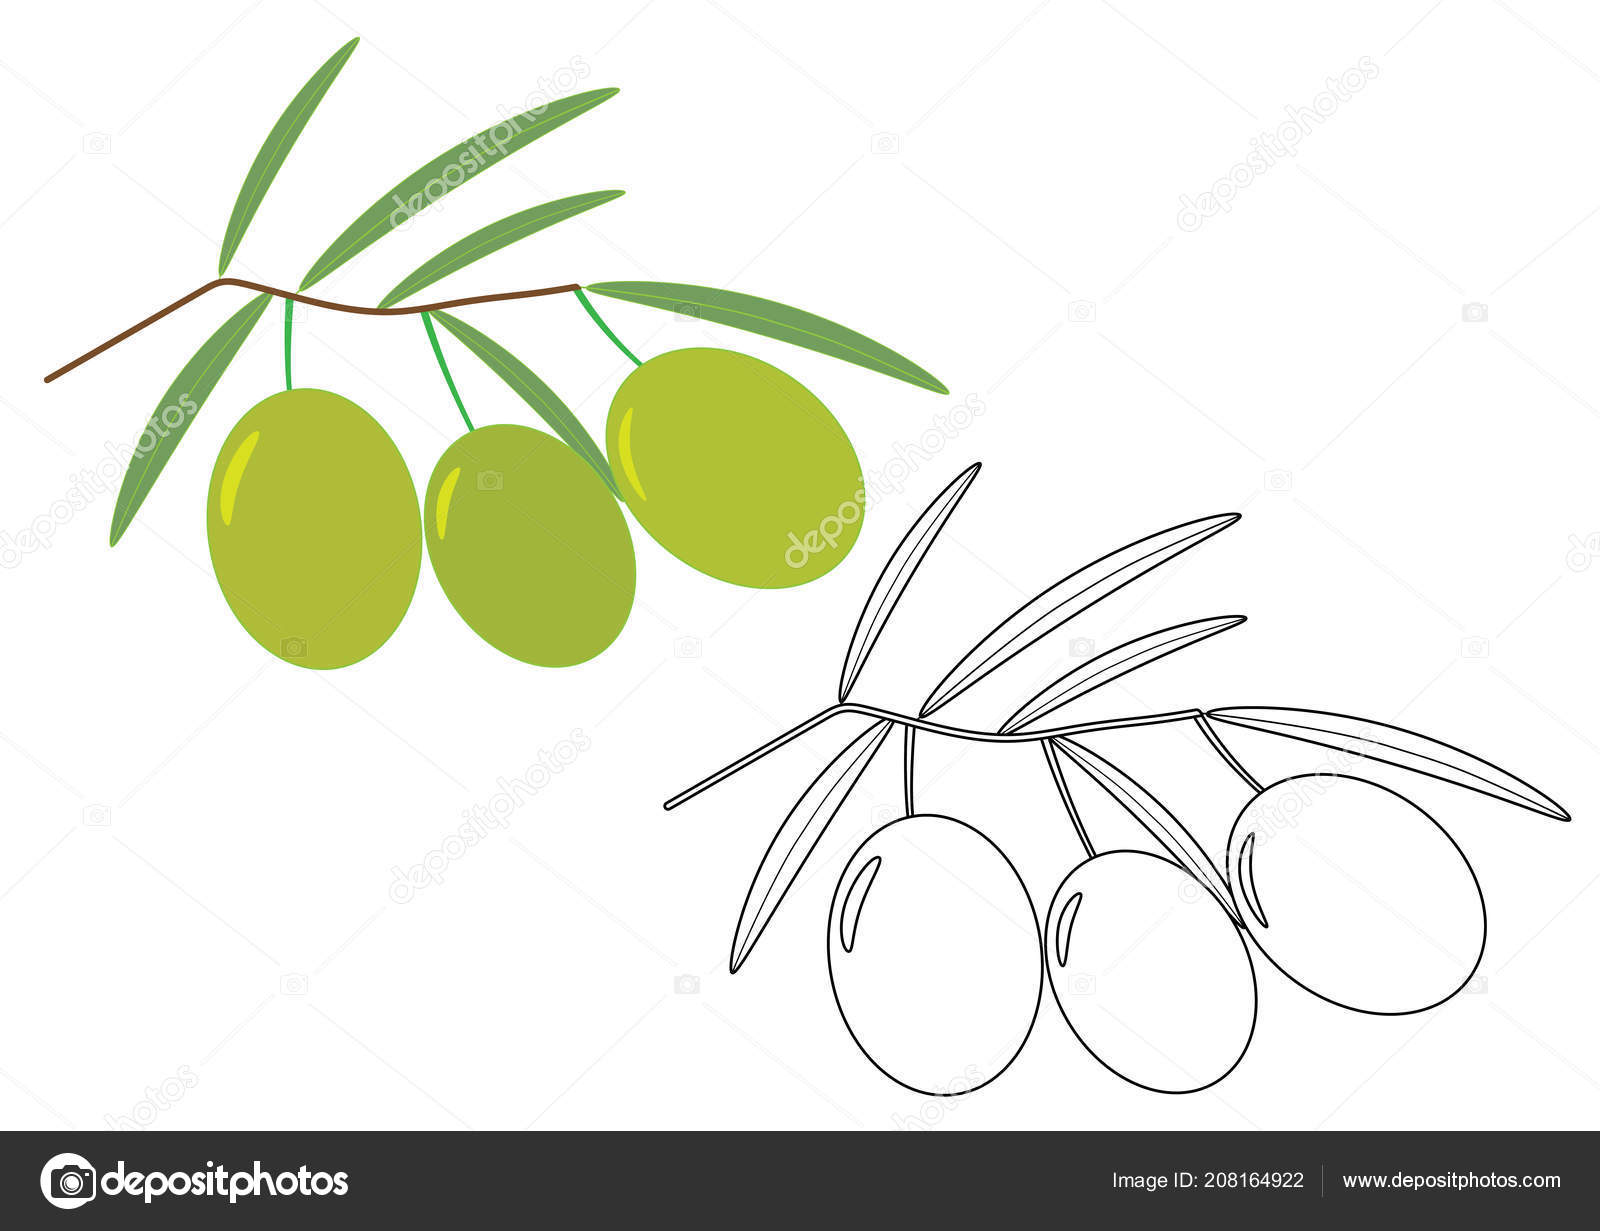 Olives Coloring Page Vector Illustration Stock Vector C Irusetka